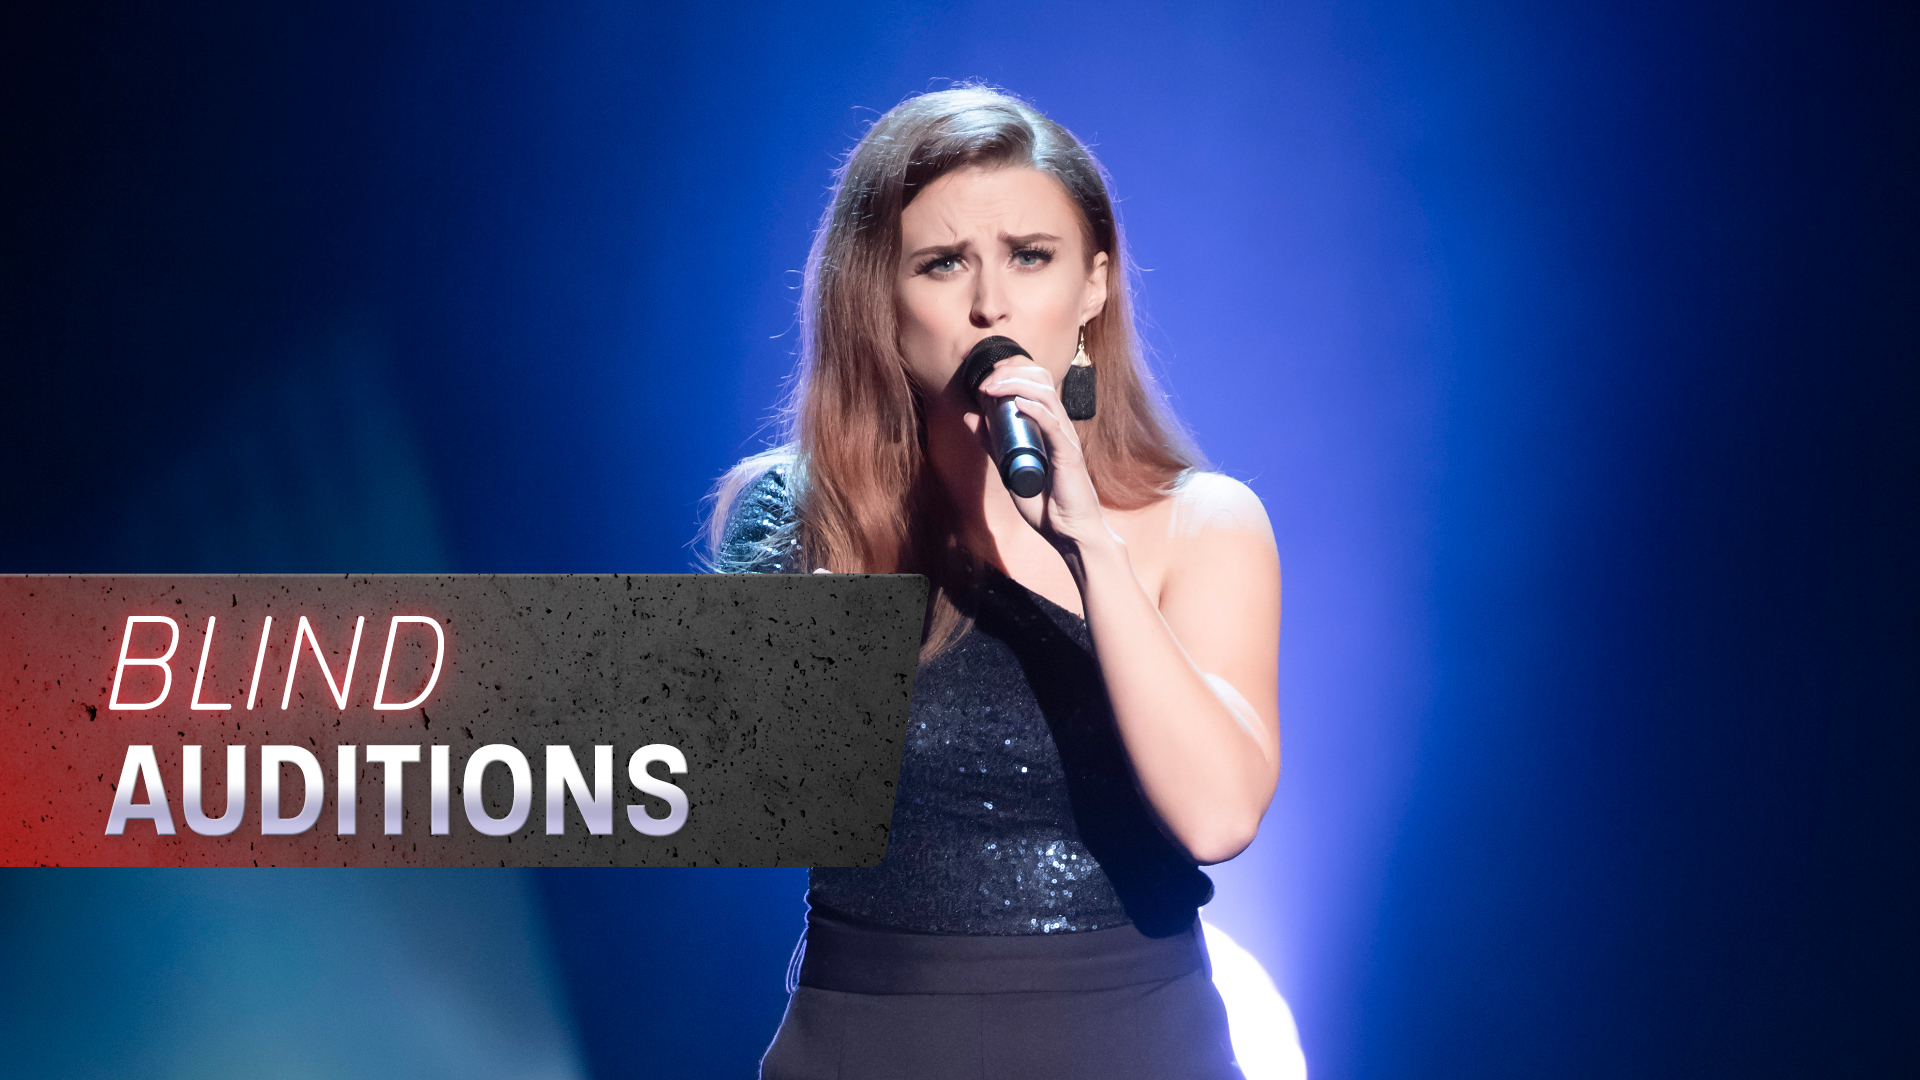 Blind Auditions: Kat Jade 'If I Were a Boy'